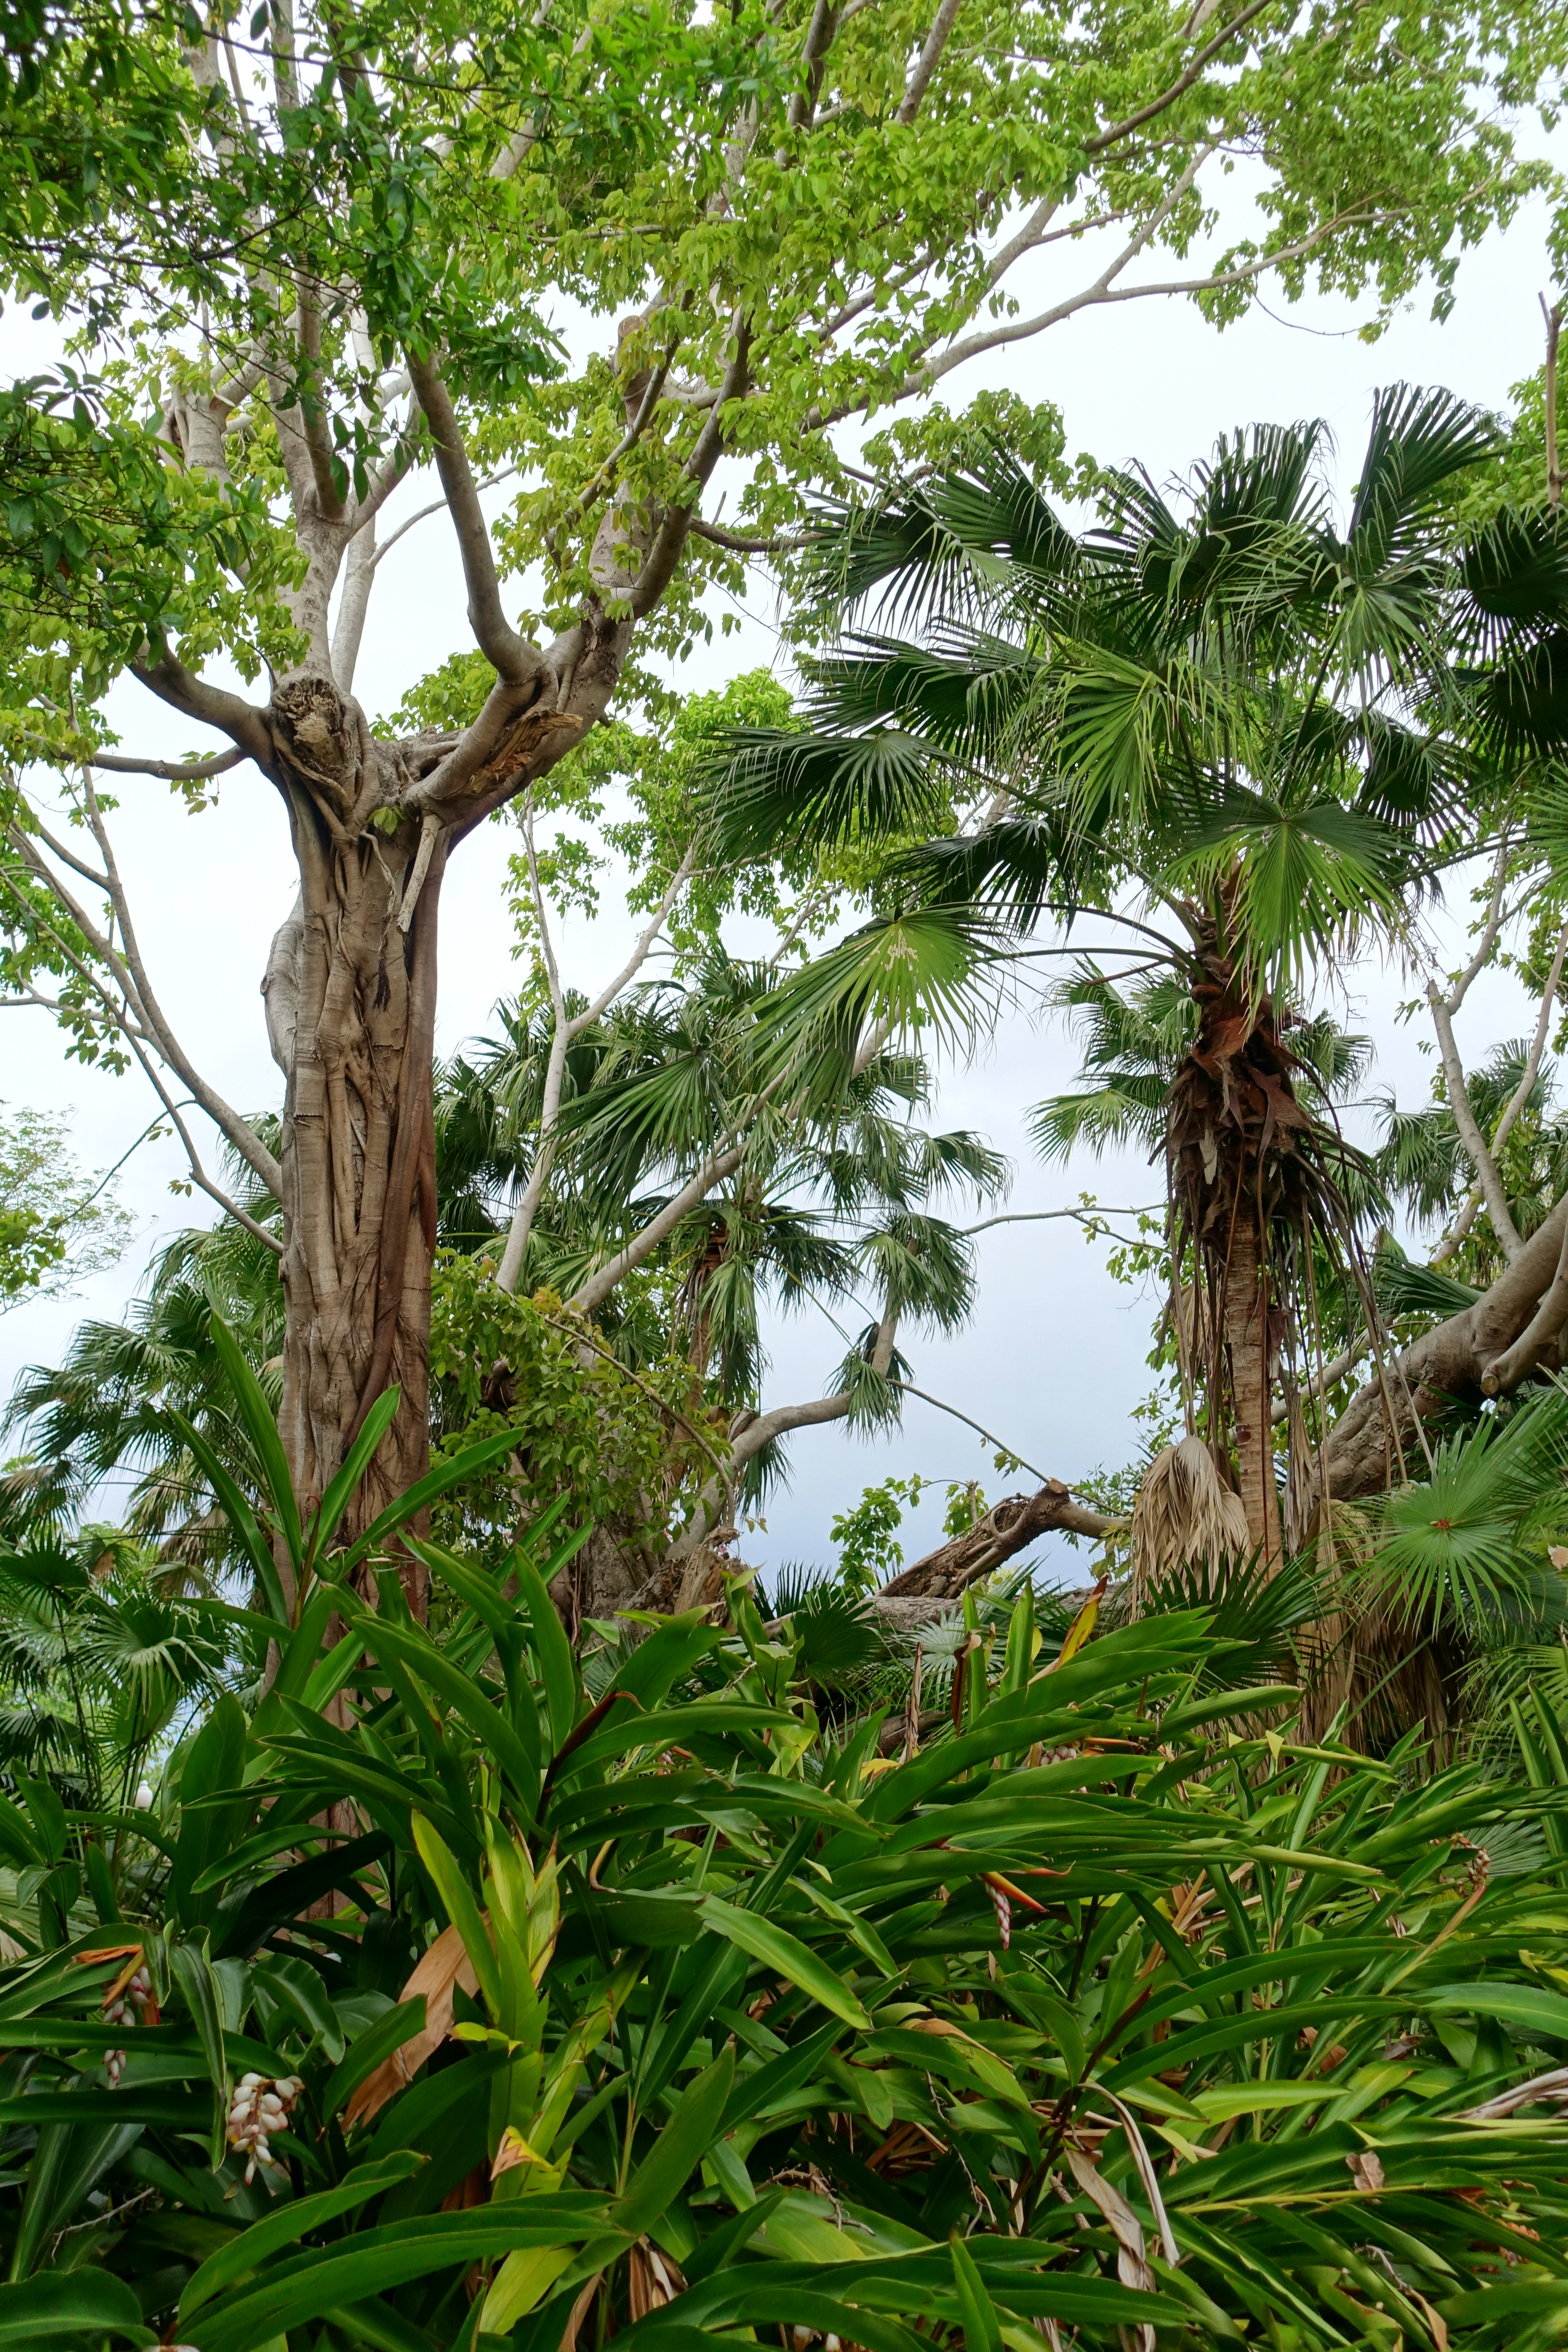 File:Foliage - McKee Botanical Garden - Vero Beach, Florida ...